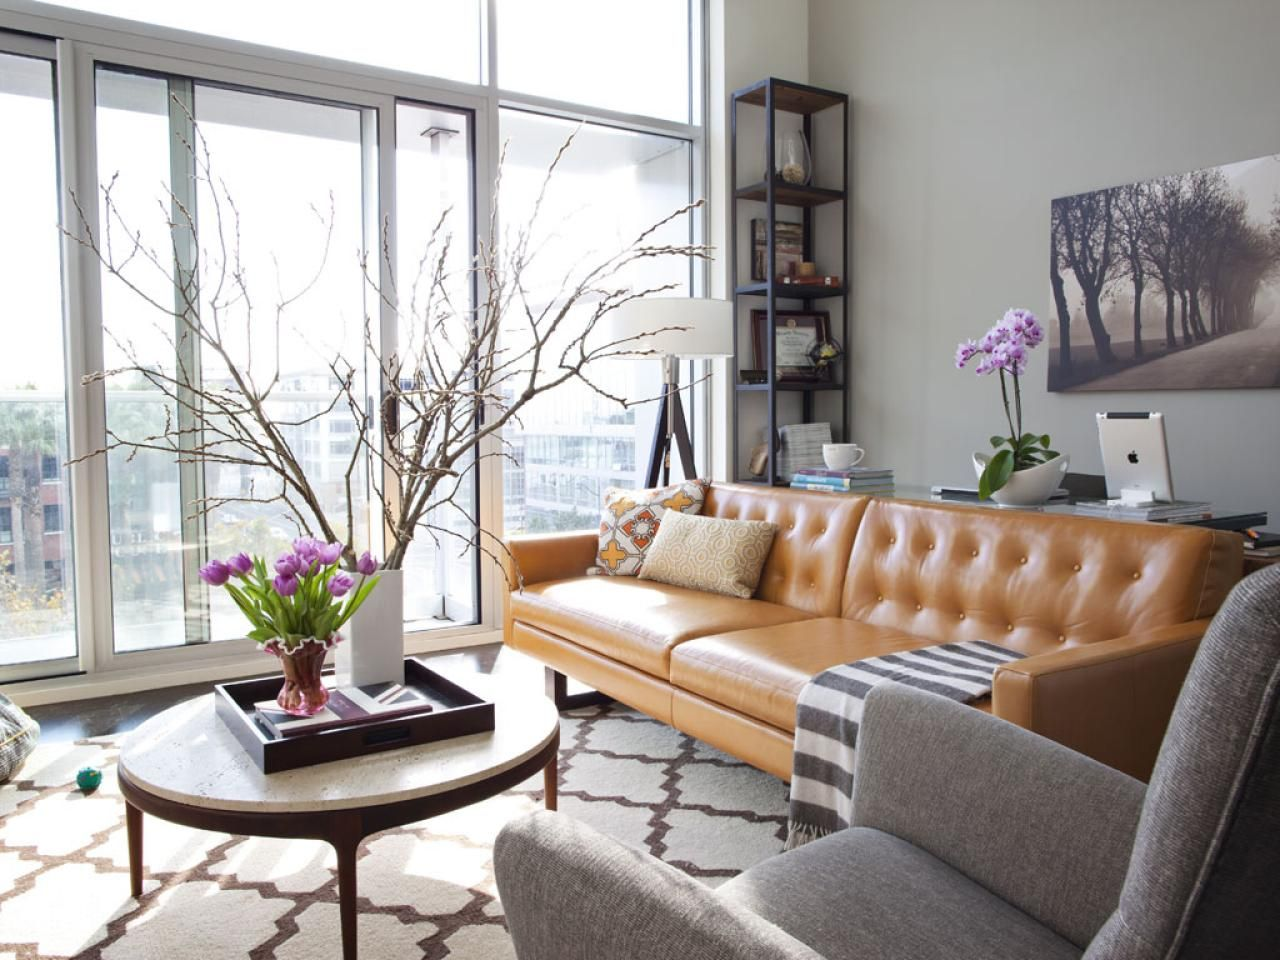 Living Room Design Tips Prepossessing Lifestyle Blogger's Spatiallychallenged Loft Design Tips  Orange Inspiration